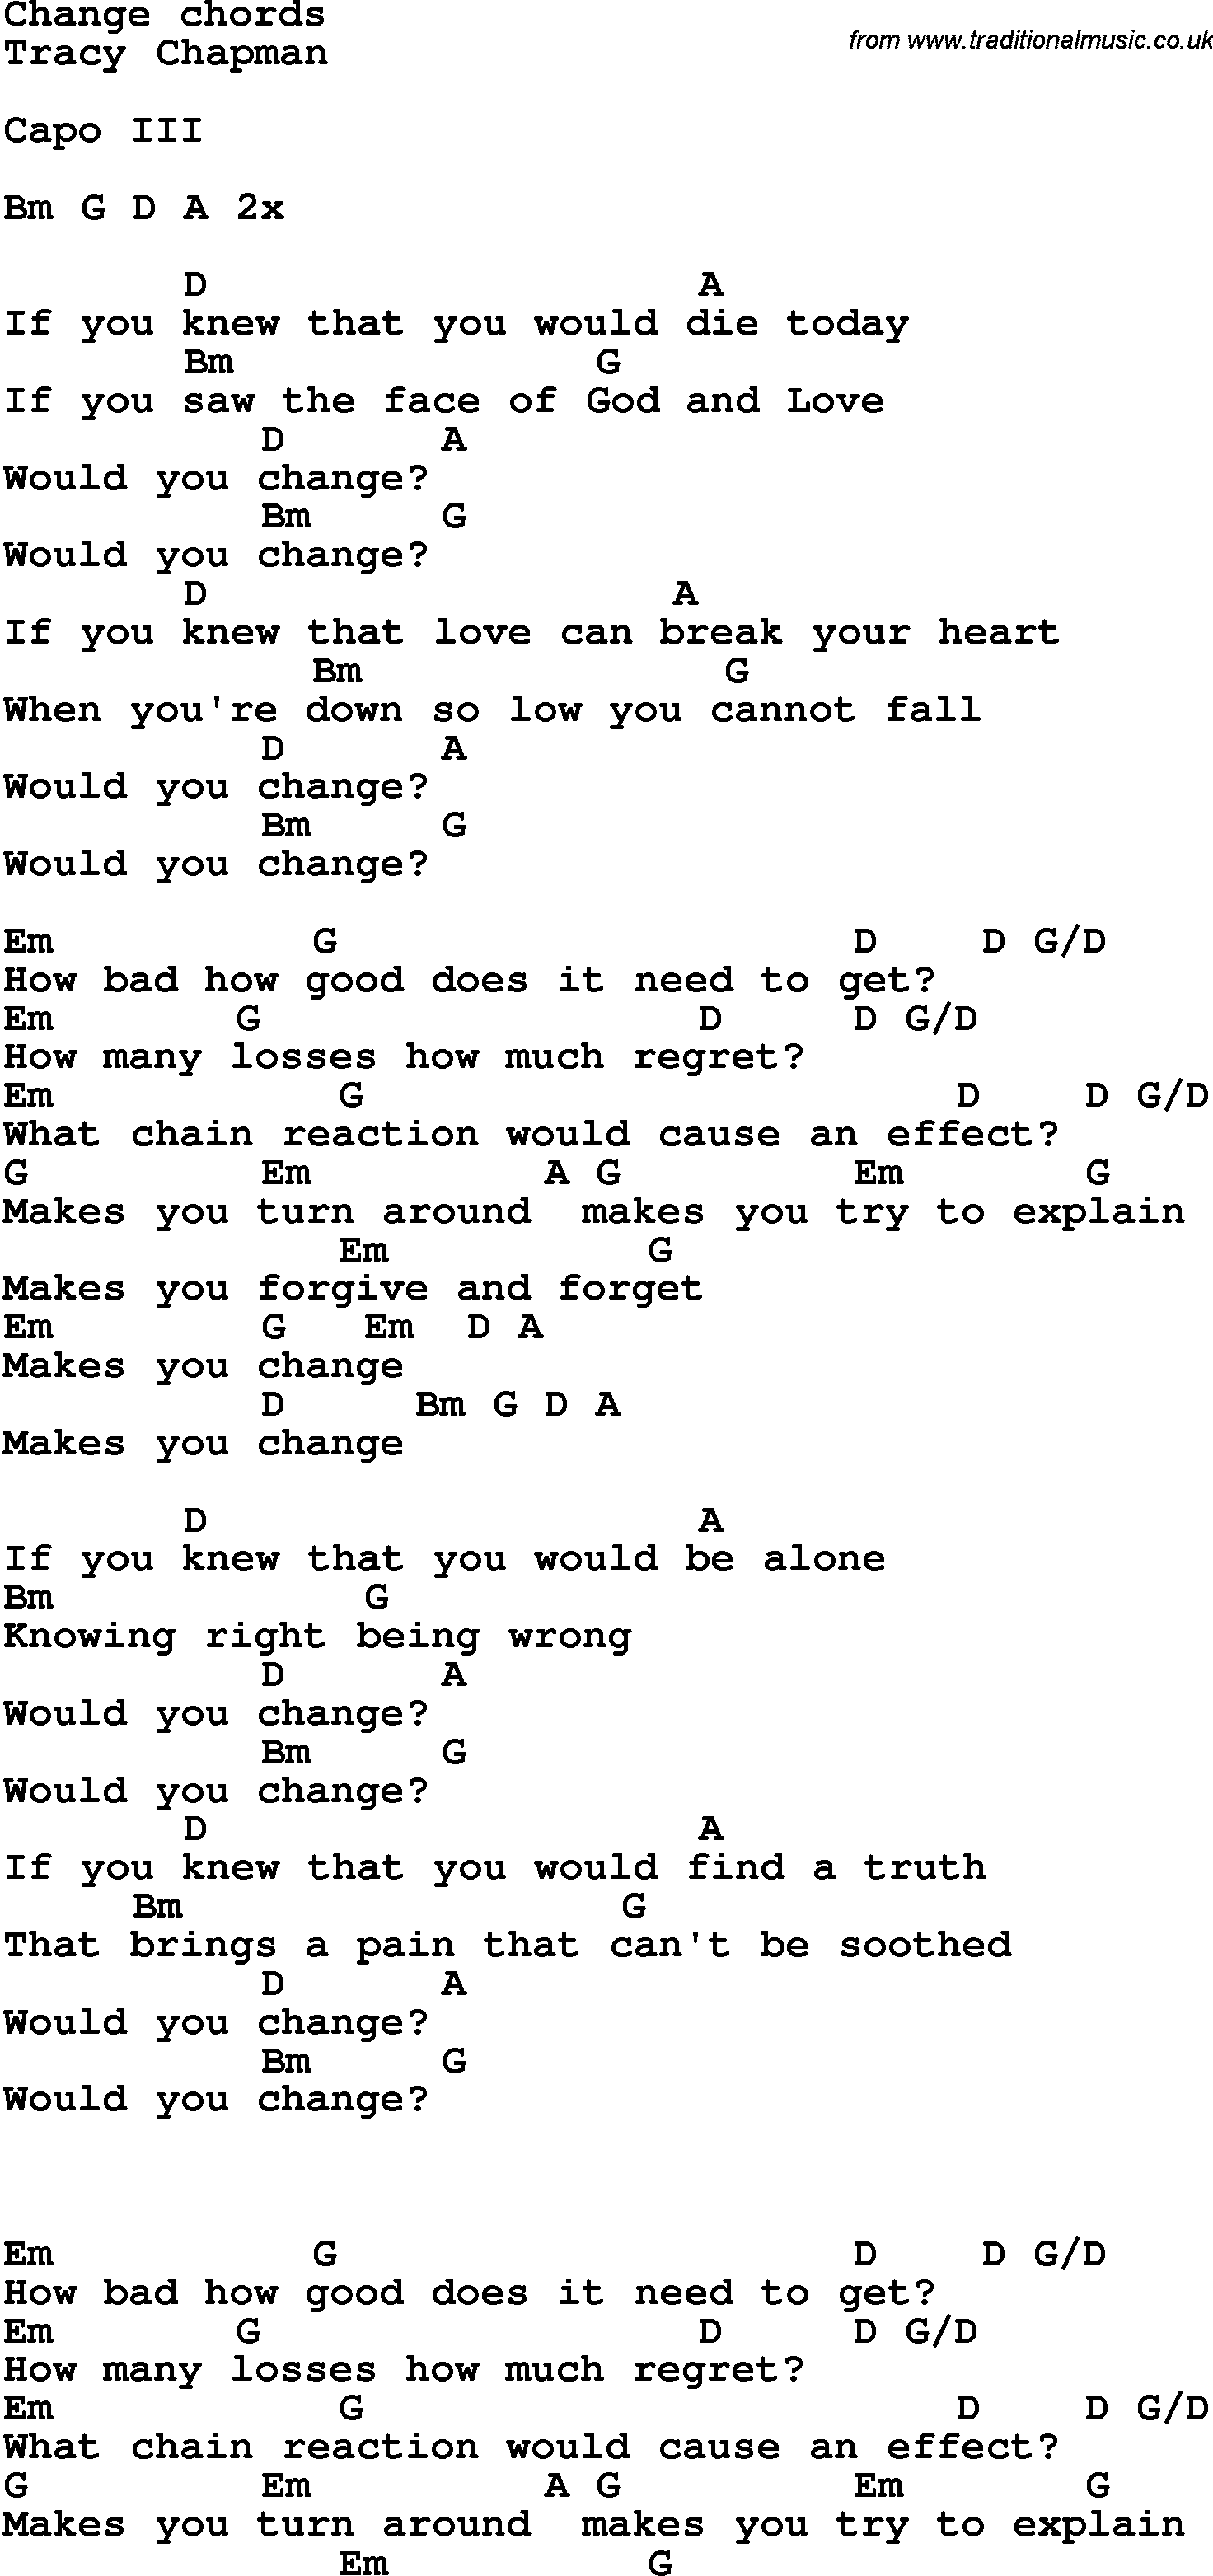 Song Lyrics With Guitar Chords For Change